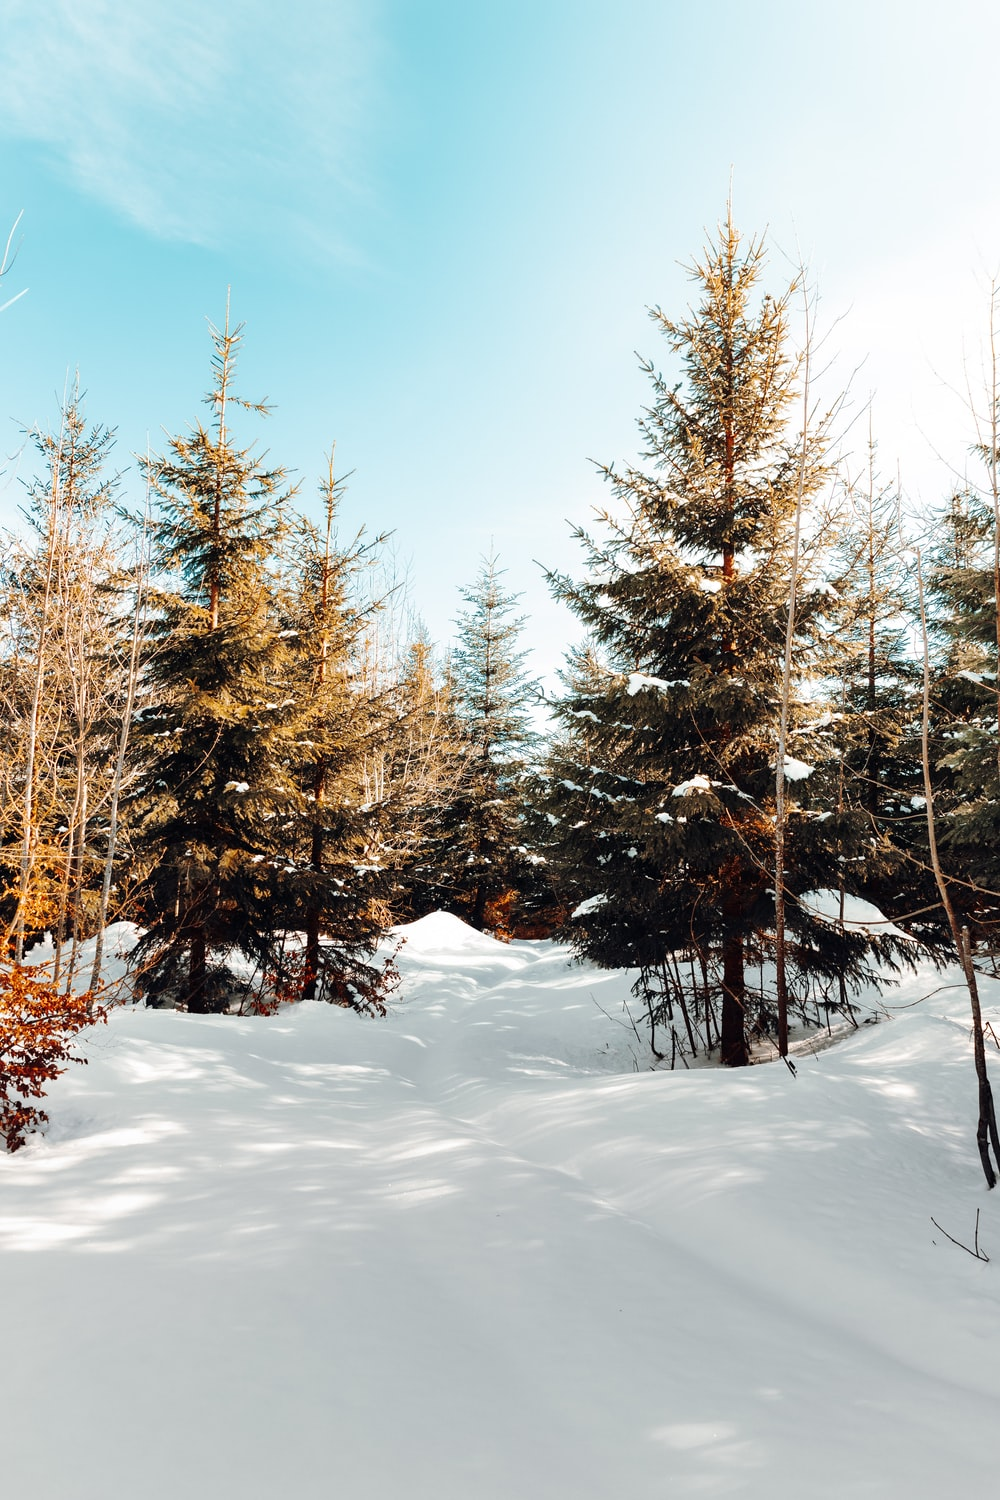 brown trees on snow covered ground under blue sky during daytime